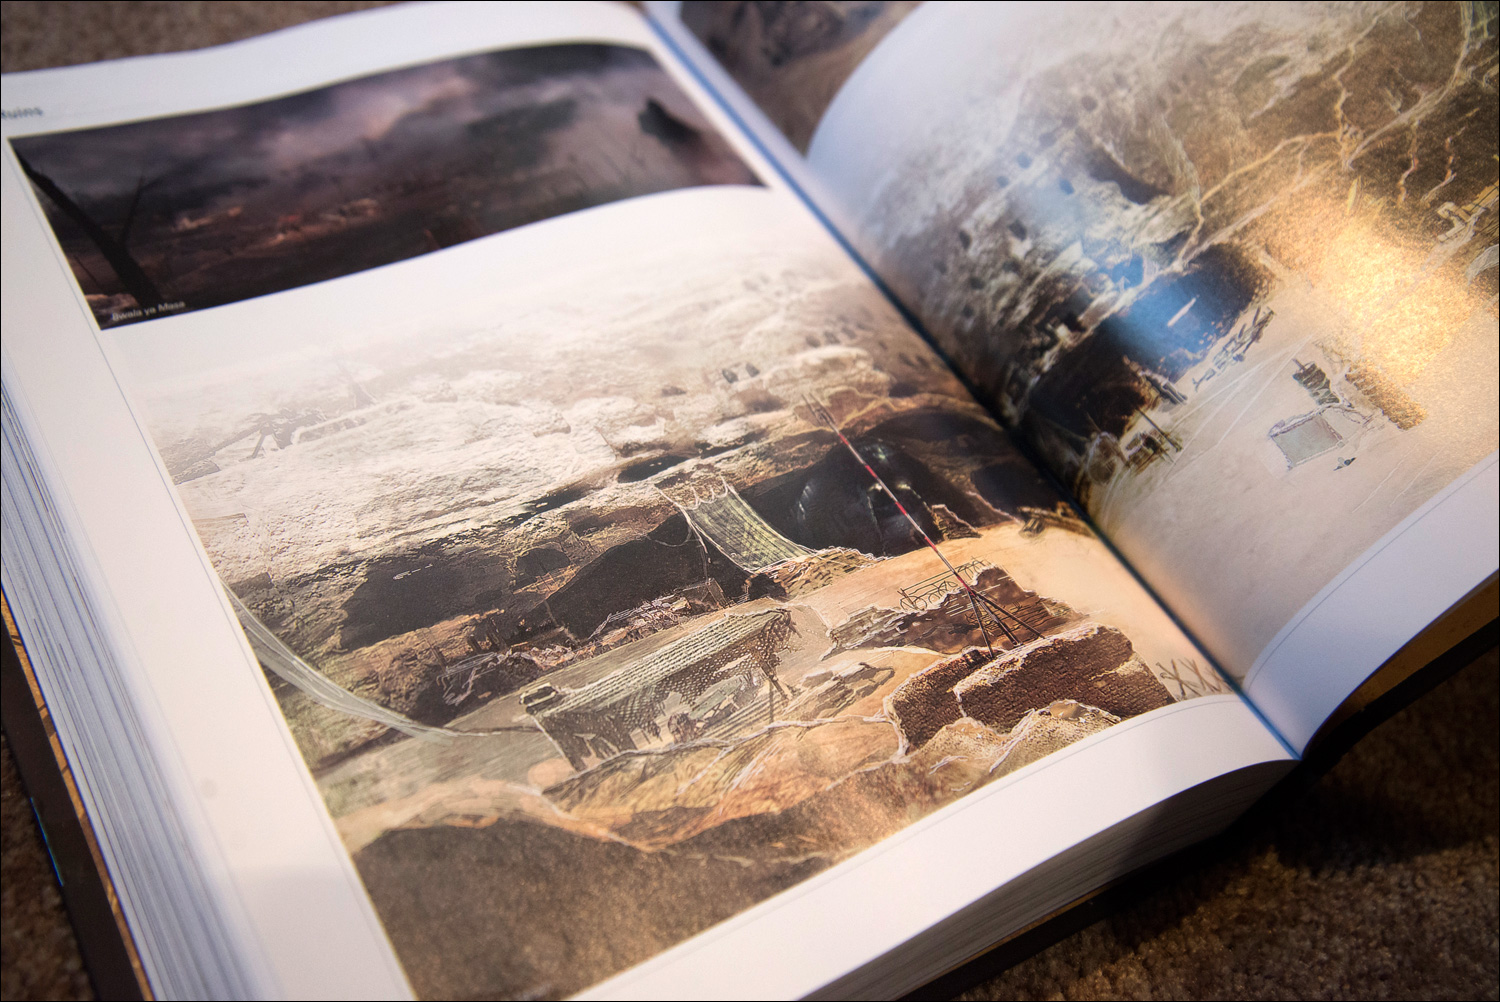 Metal-Gear-Solid-V-The-Phantom-Pain-Collector's-Edition-Guide-Artwork-Gallery-Ruins